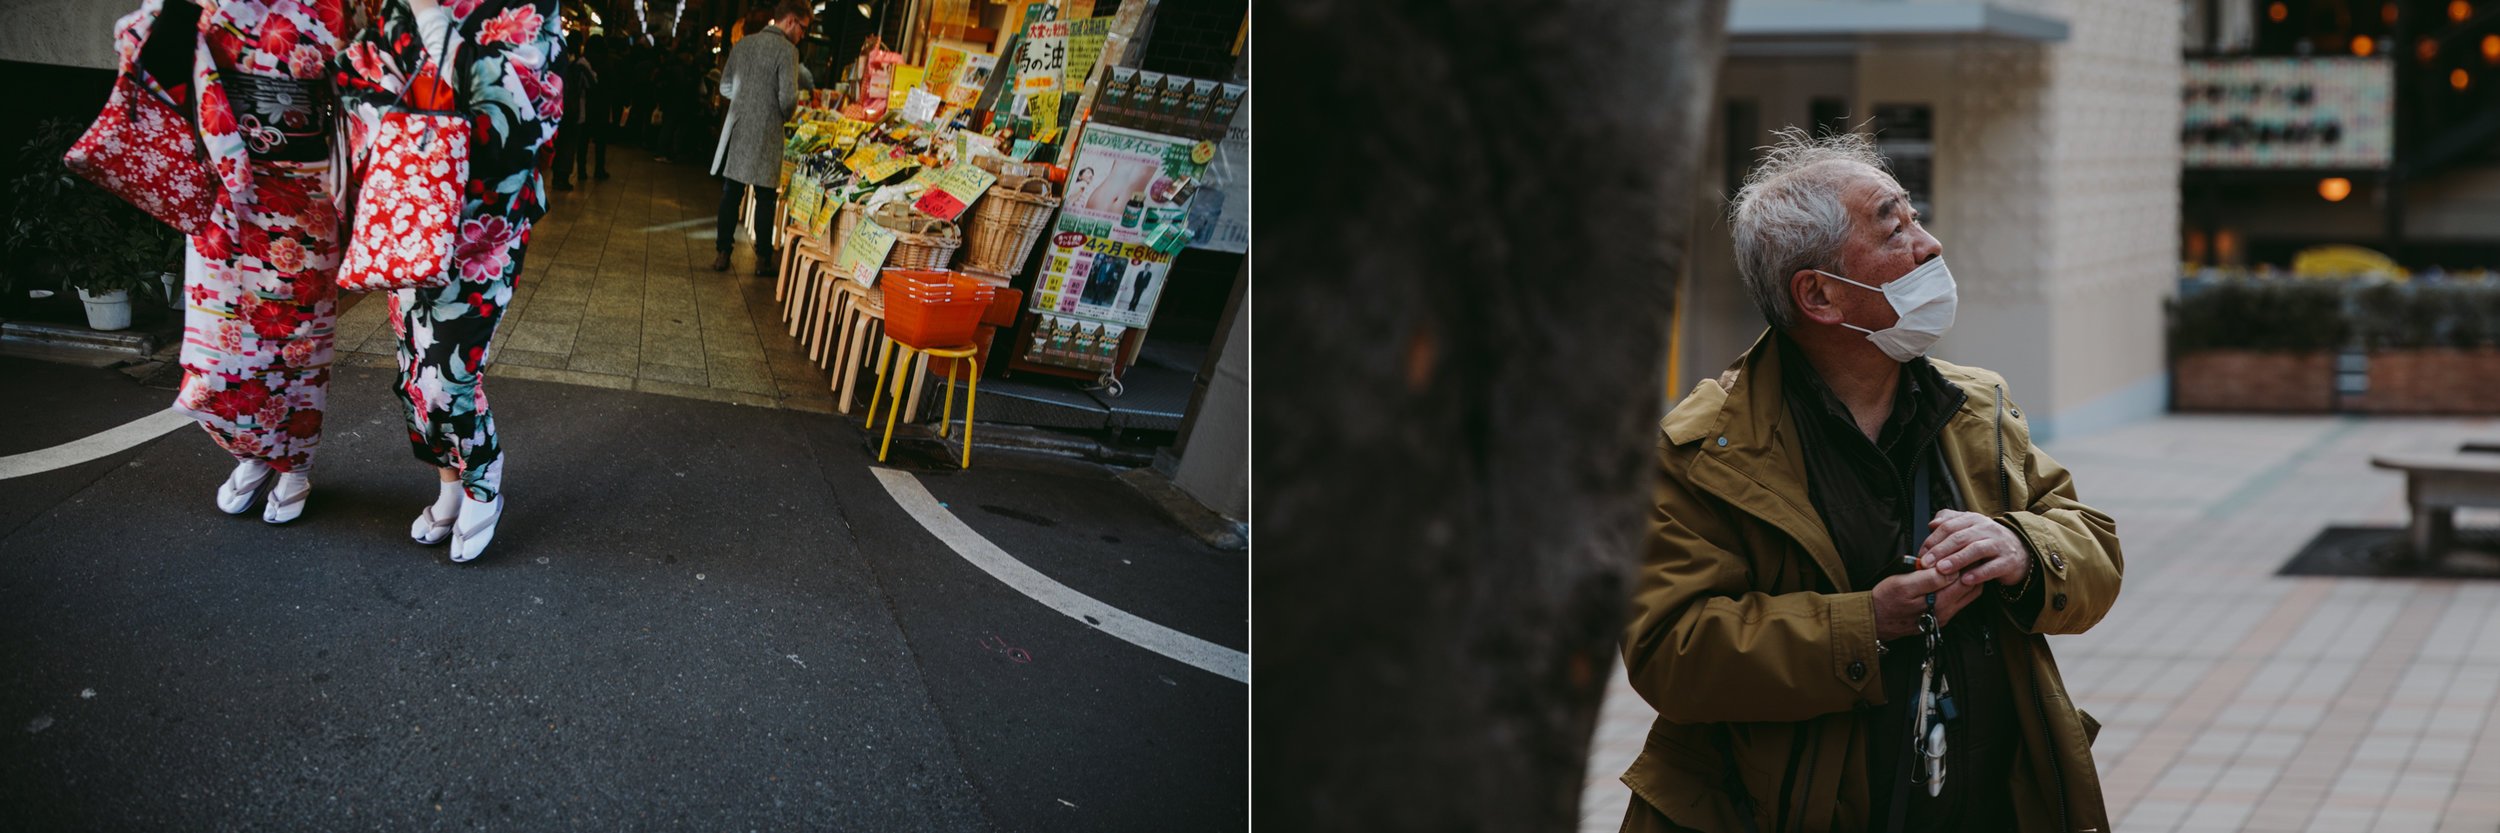 MikeSeehagel-commercial-lifestyle-travel-photography-Japan-H02.jpg